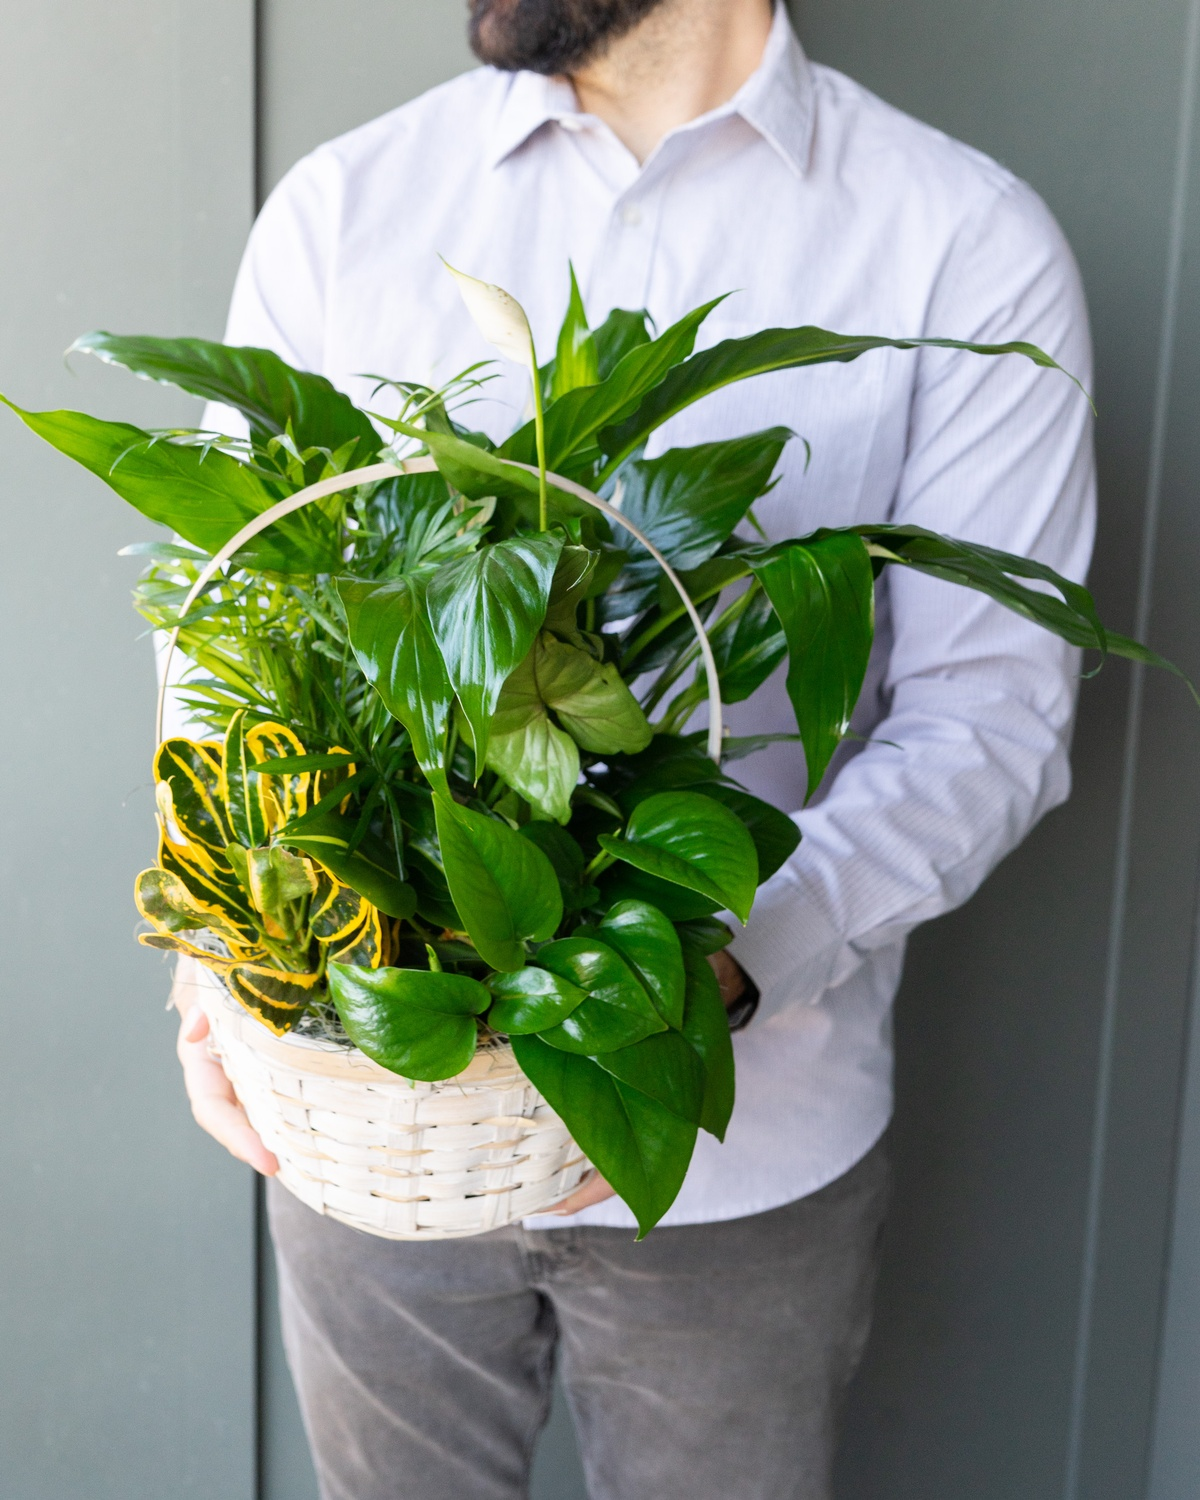 What should I deliver to my boyfriend?